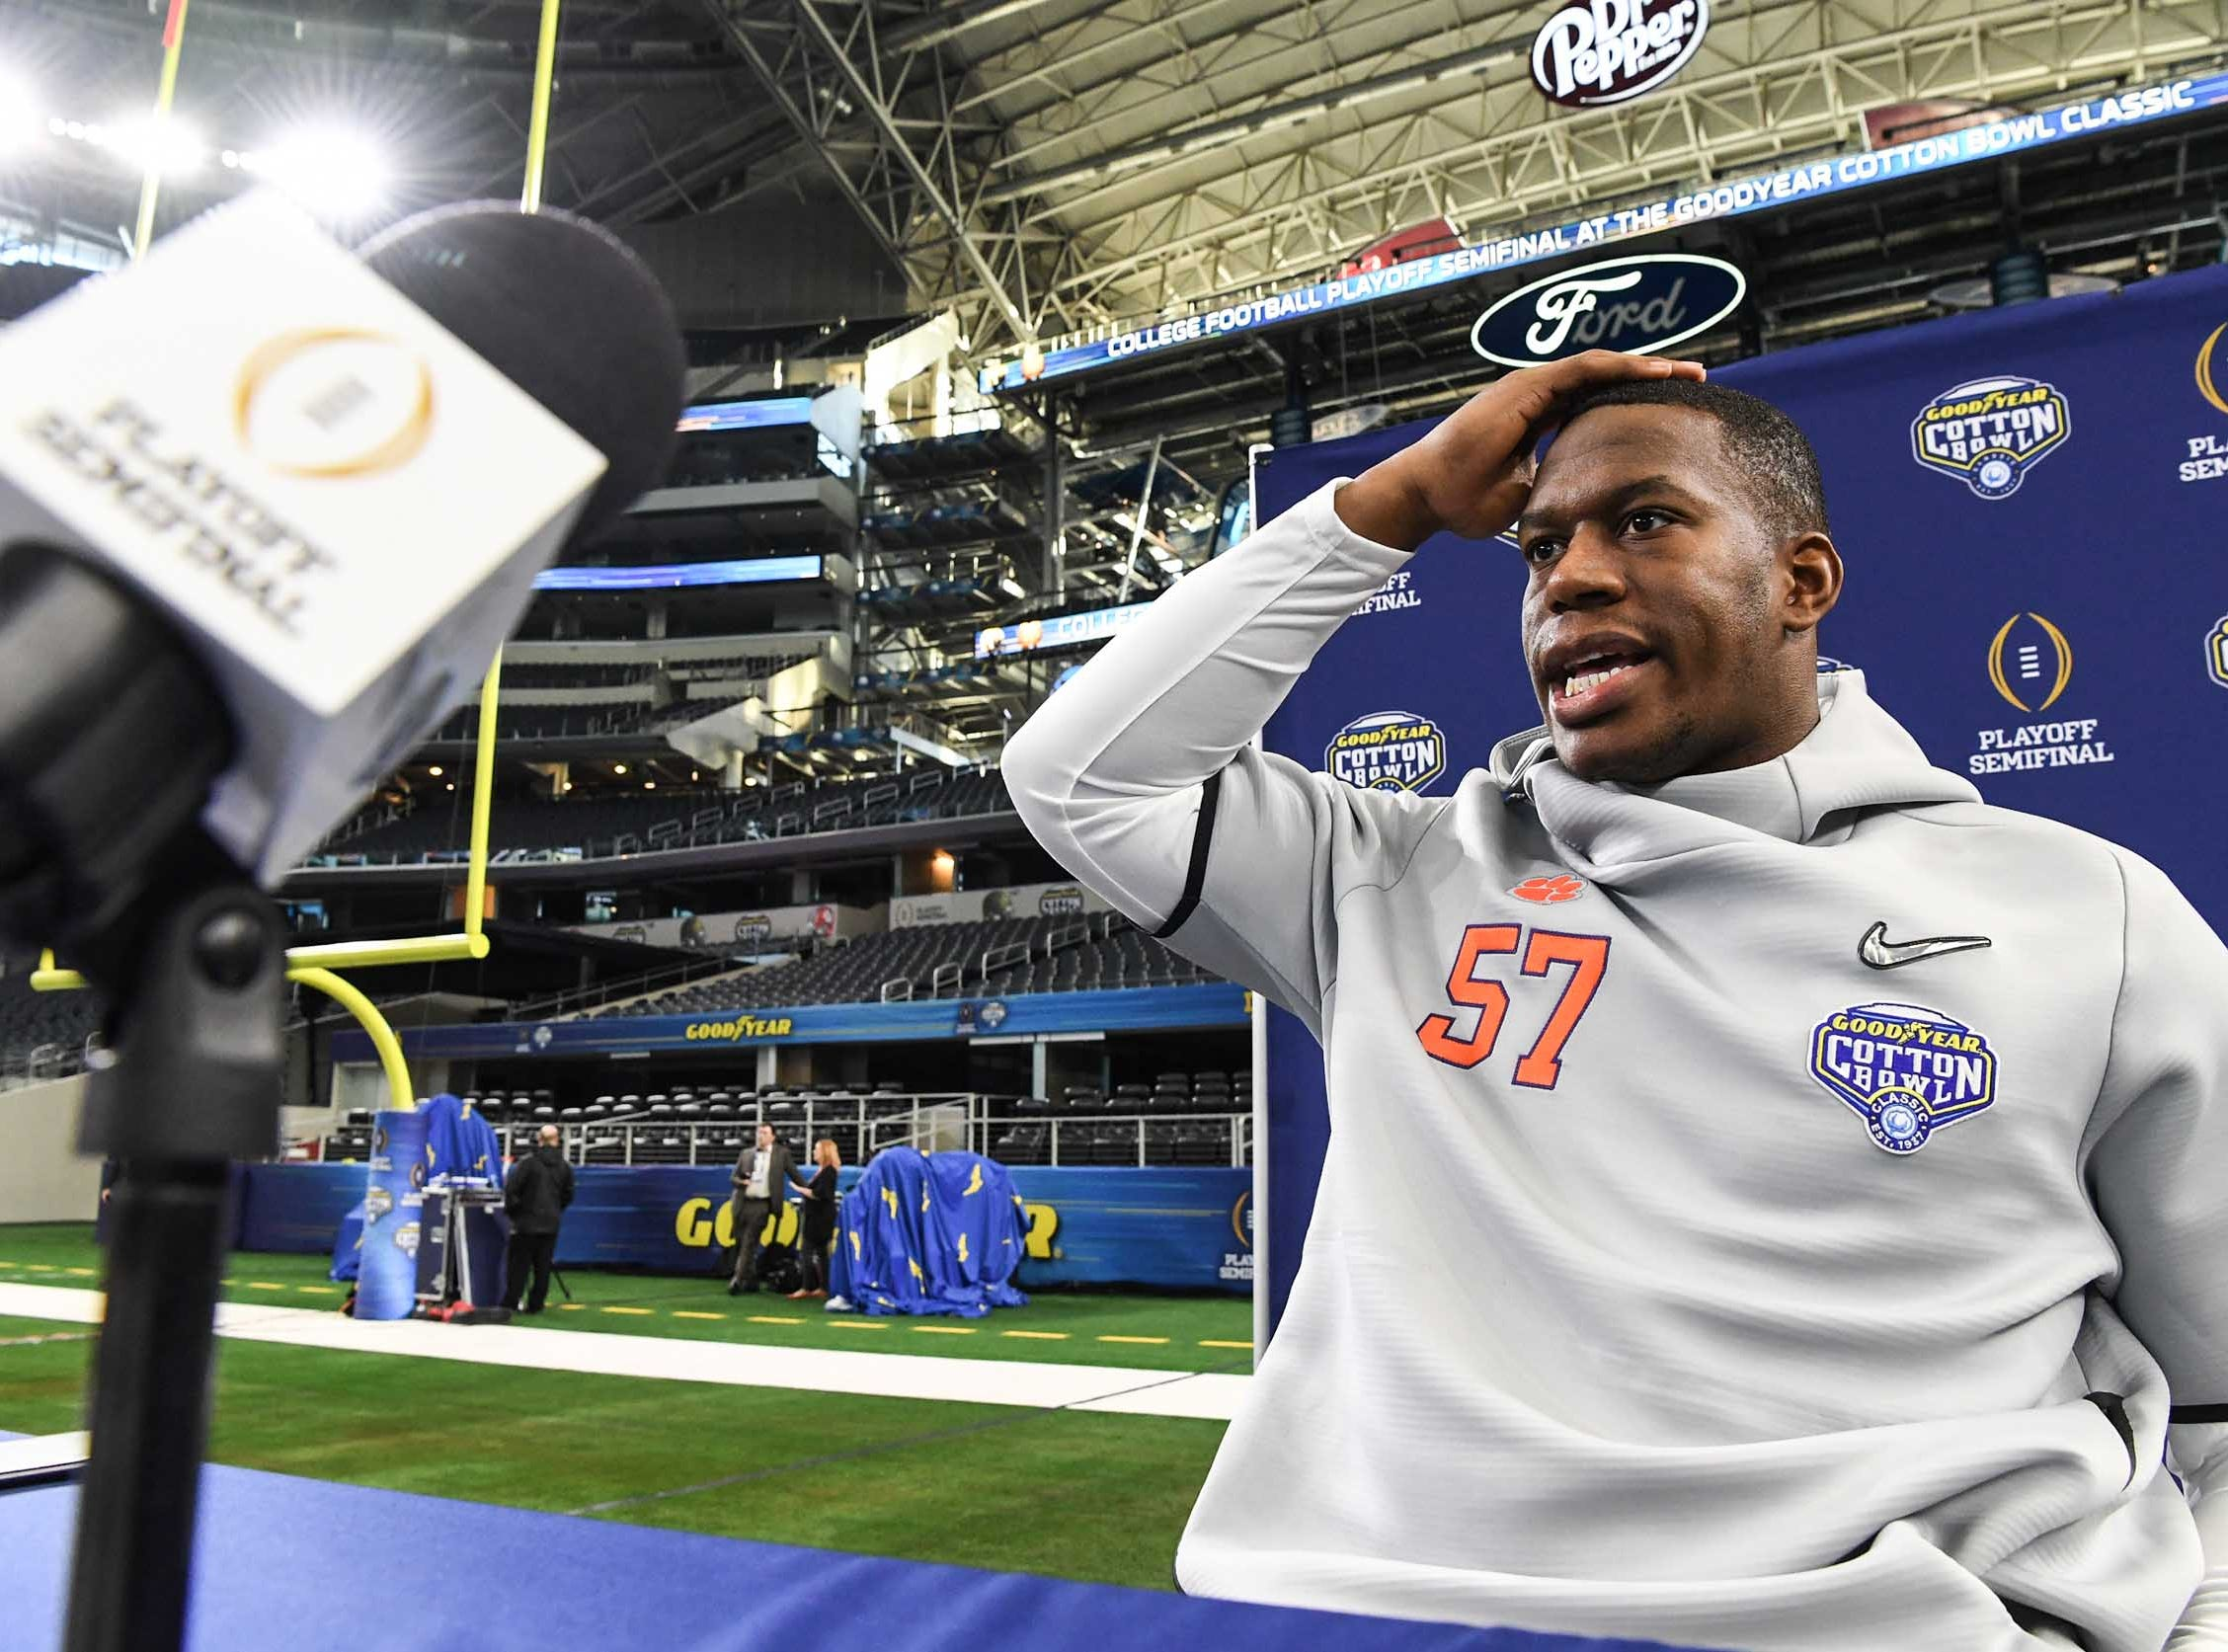 Clemson linebacker Tre Lamar talks during Media Day for Clemson and Notre Dame at the AT&T Stadium in Dallas December 27, 2018.